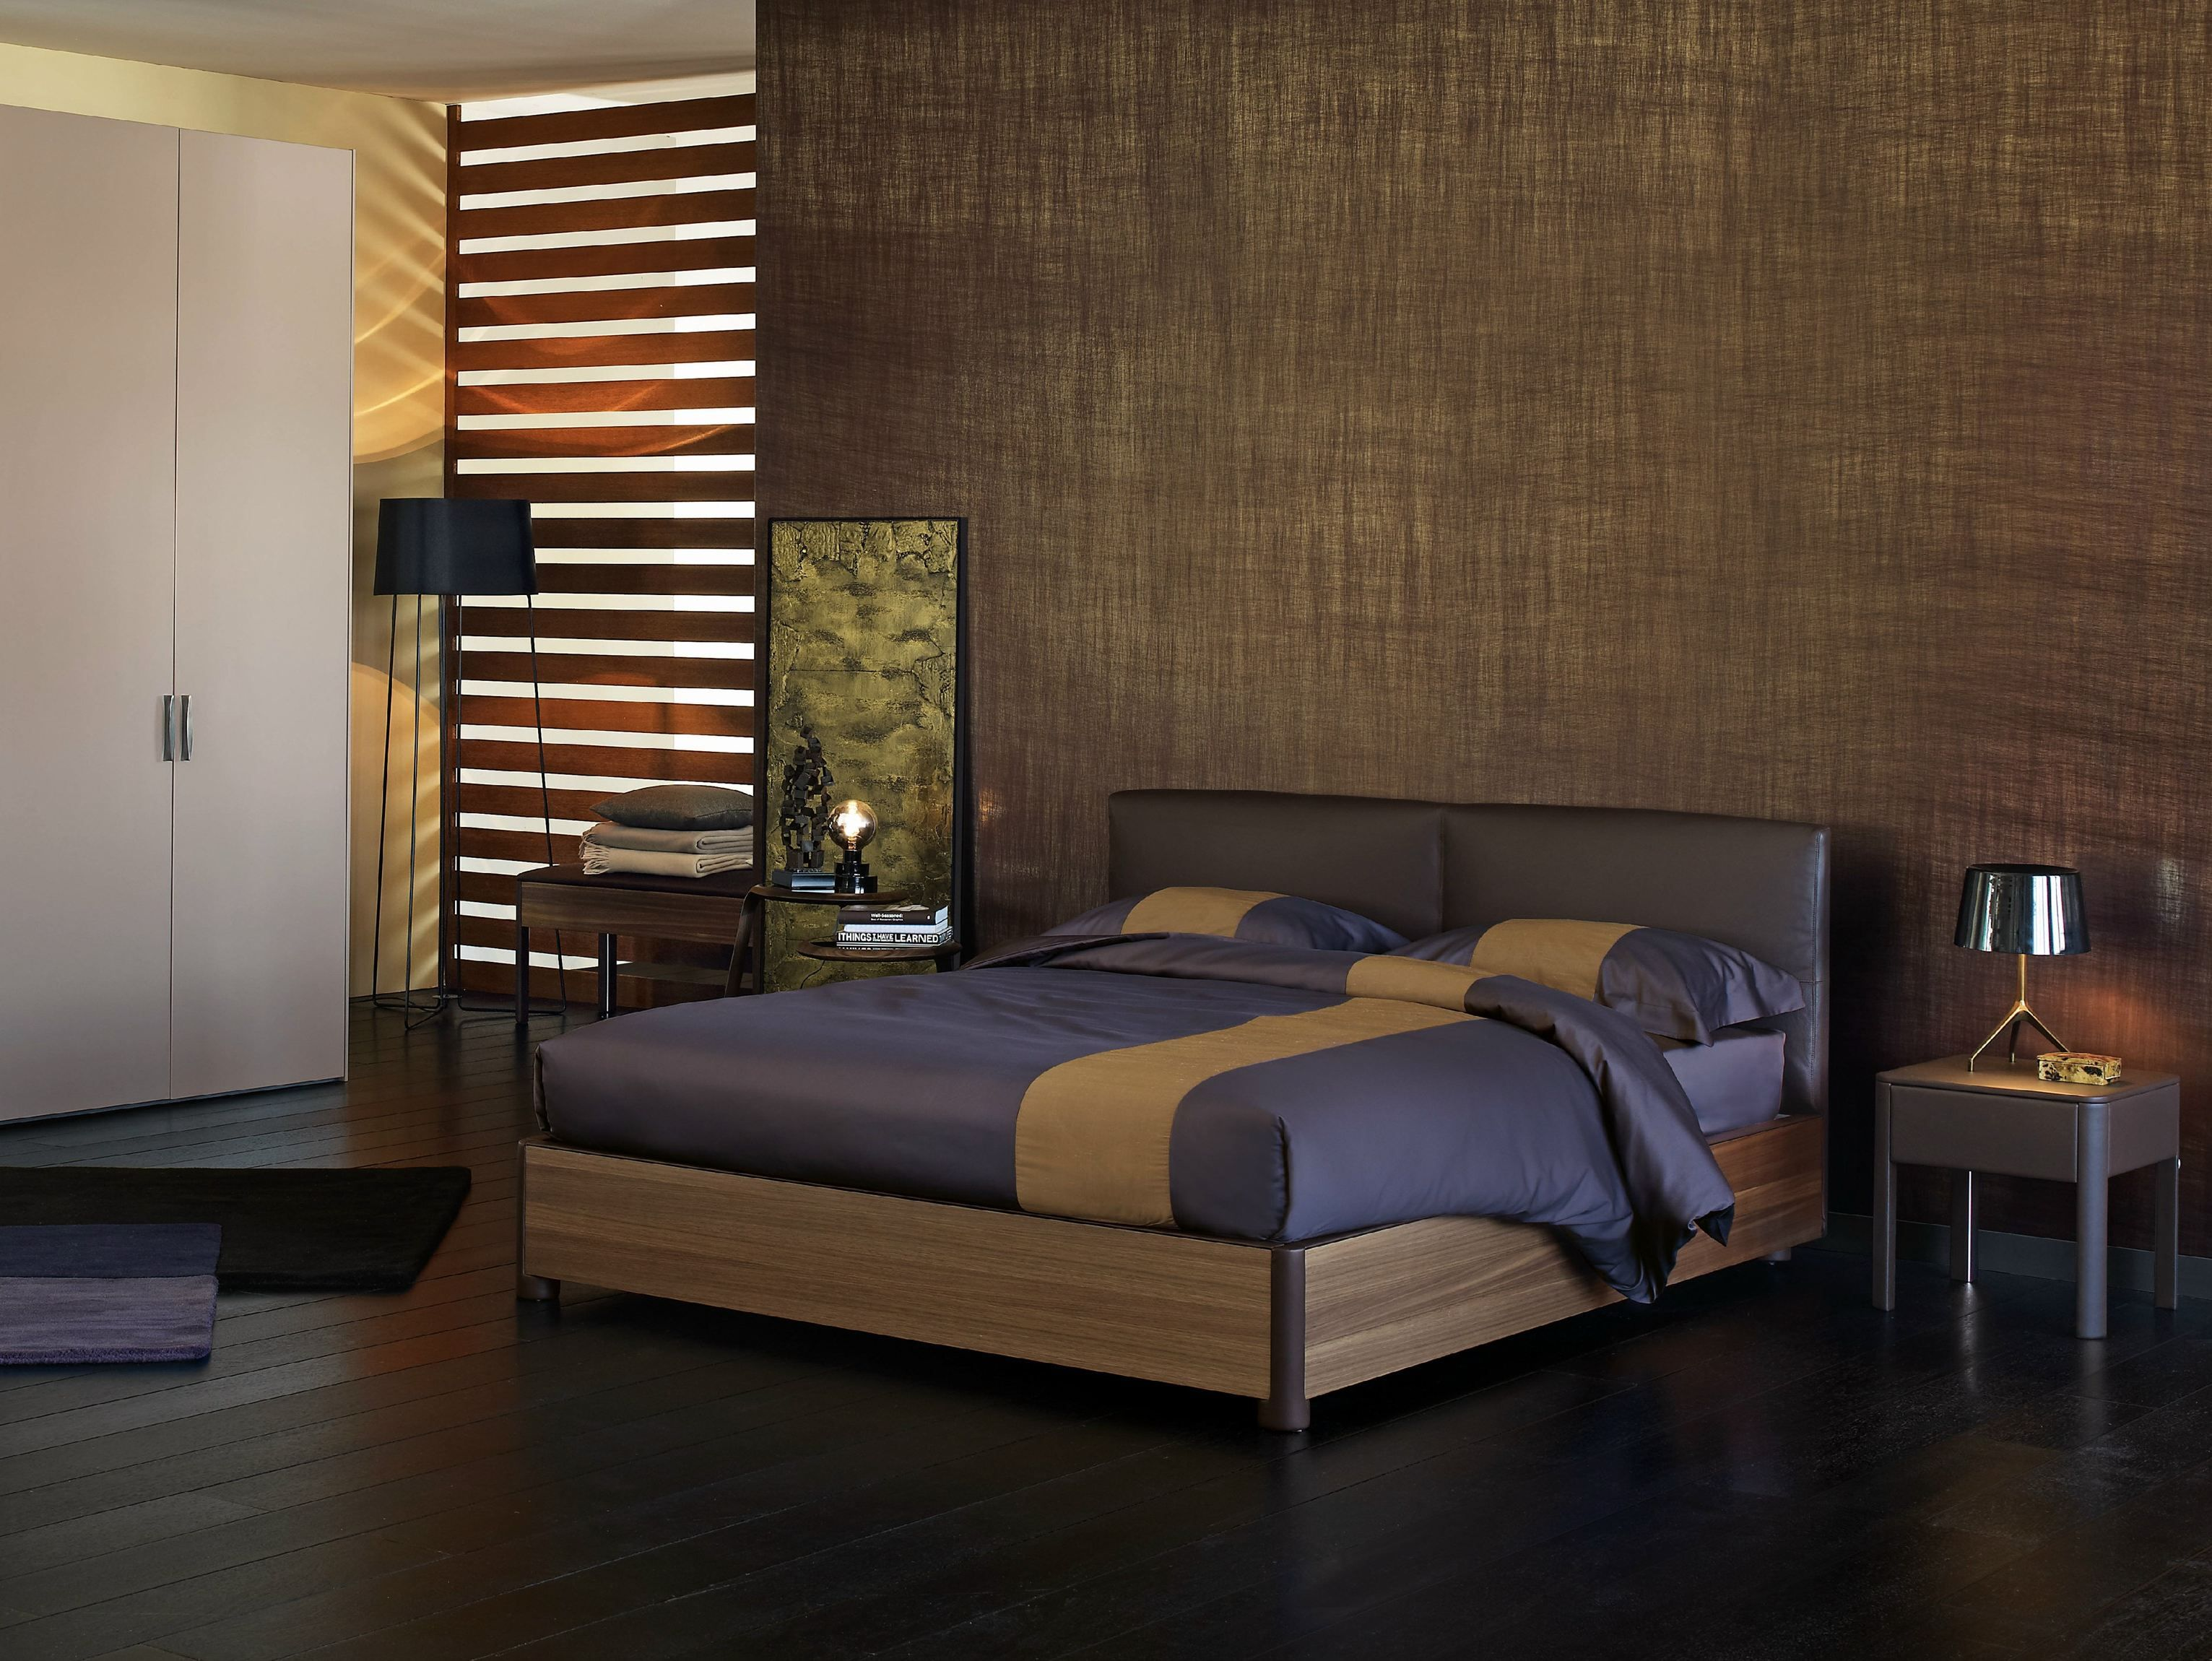 Biancheria Da Letto Flou.Flou Momo 6912 Linen Set Available In A Variety Of Colors And